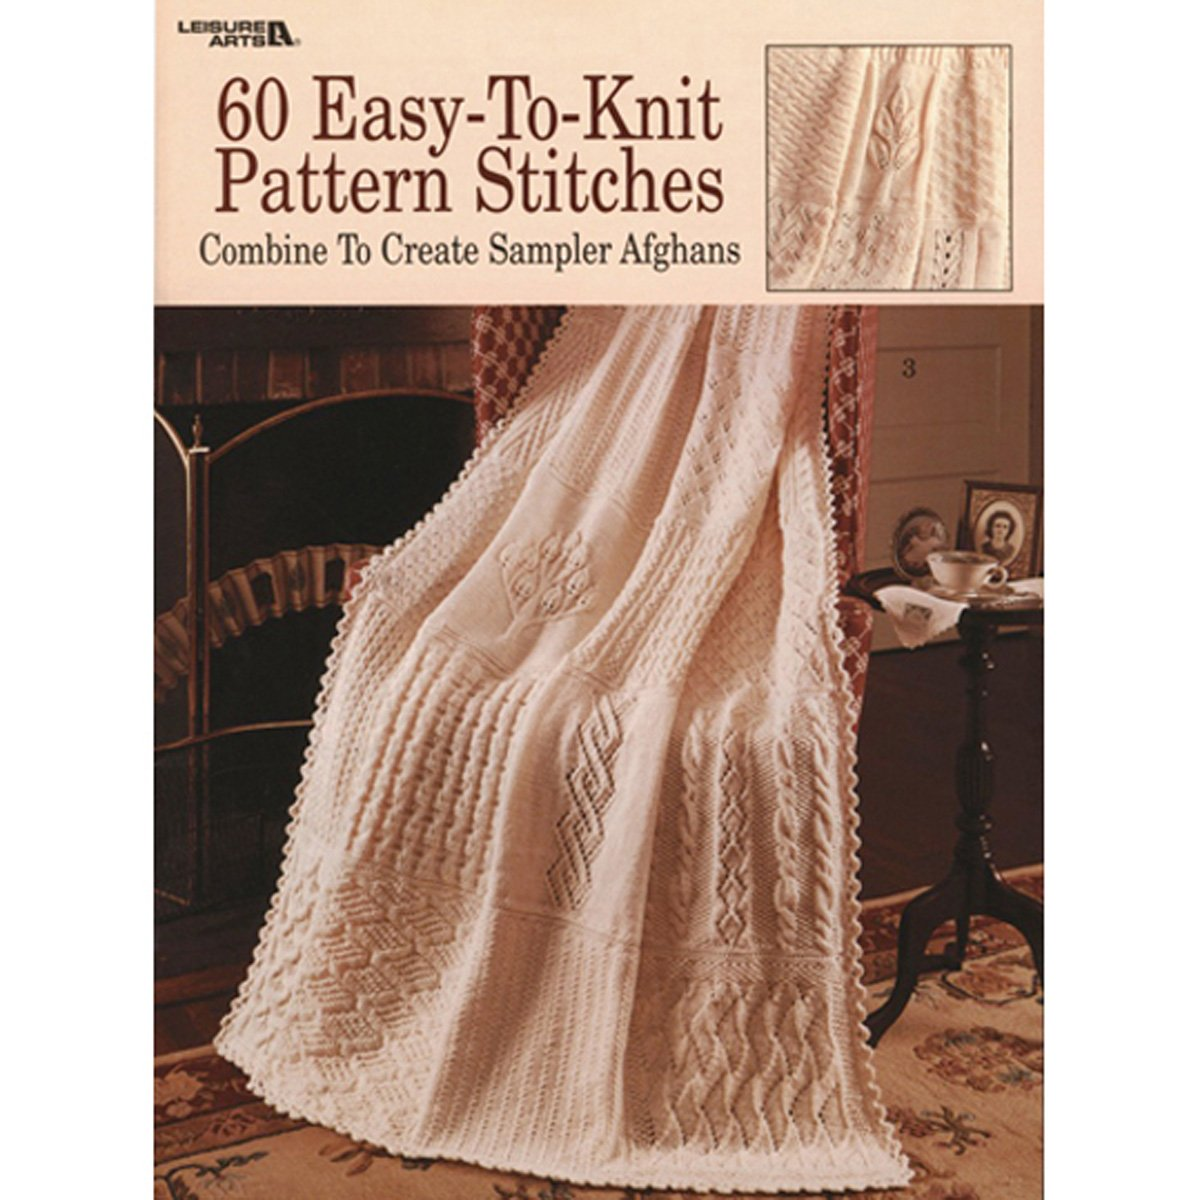 60 Easy-To-Knit Pattern Stitches: Combine to Create Sampler Afghans ...